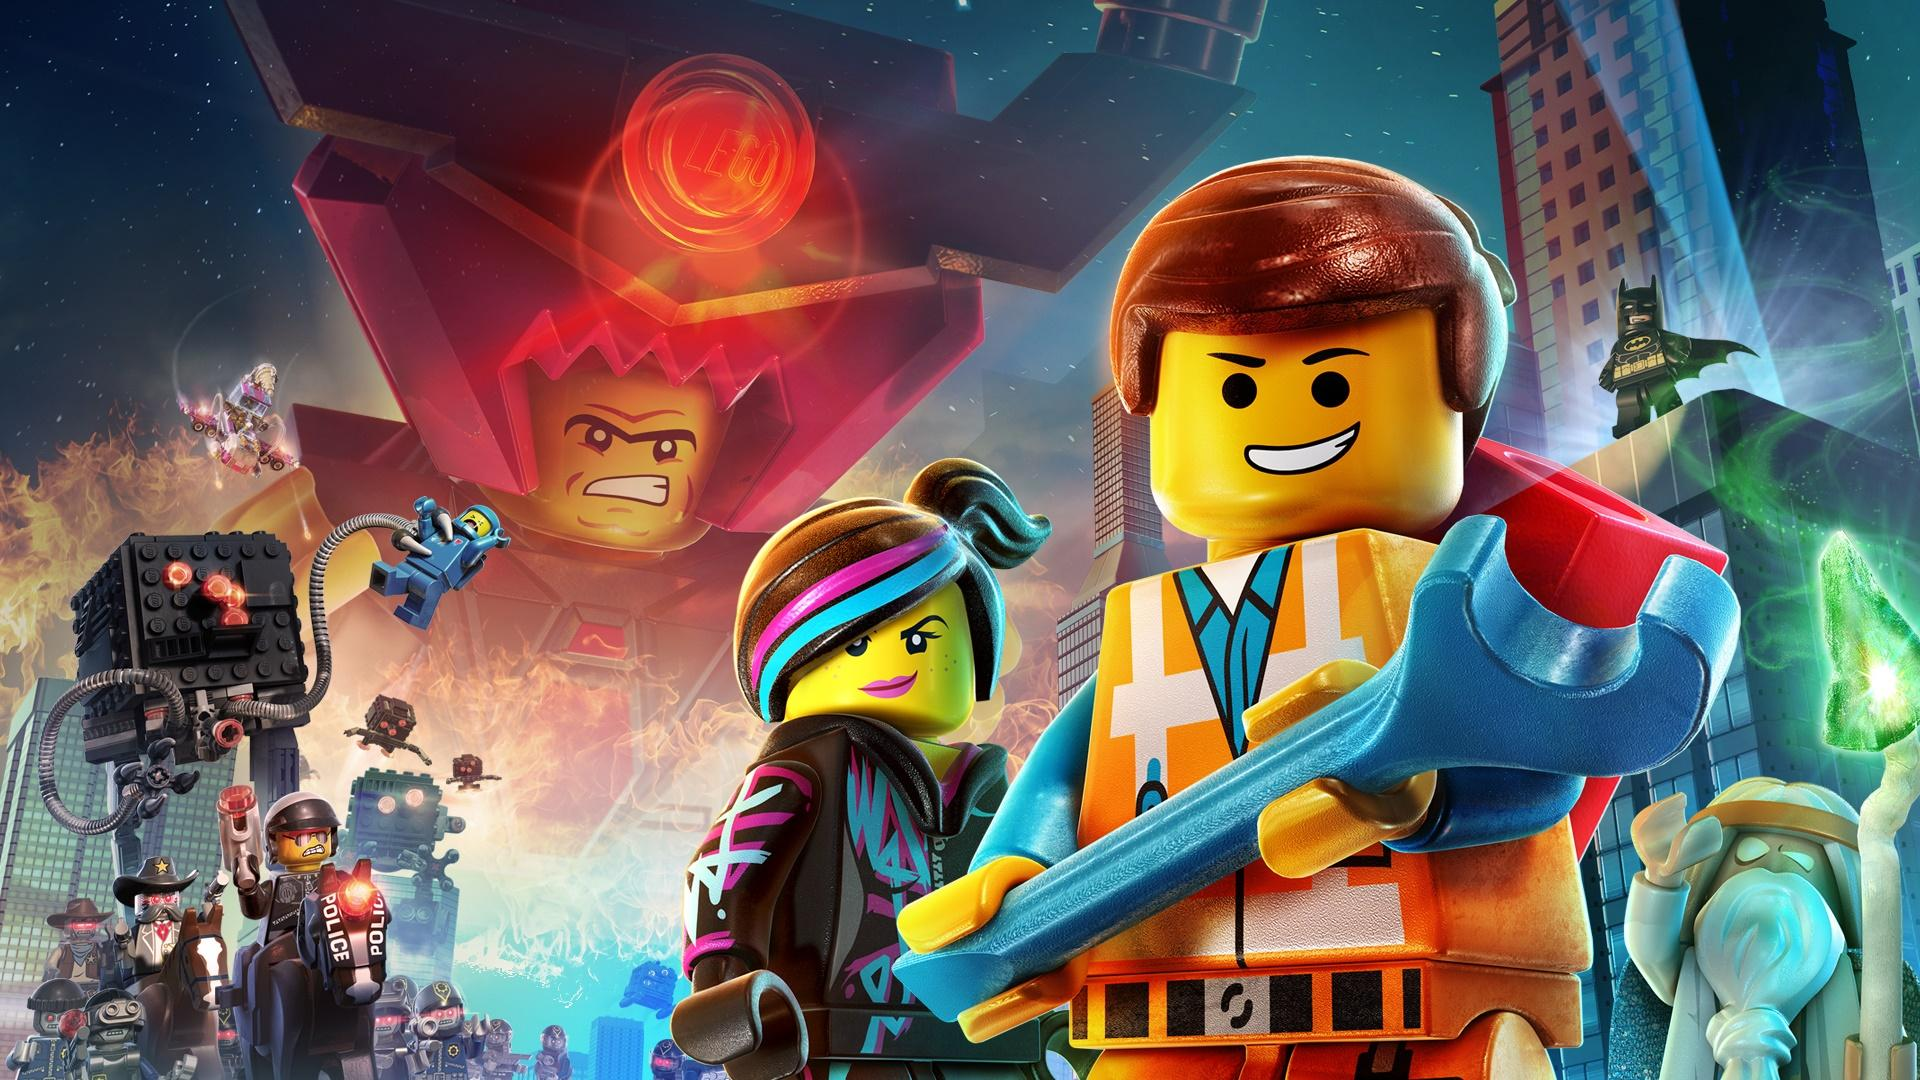 The Lego Movie. (Warner Bros.)